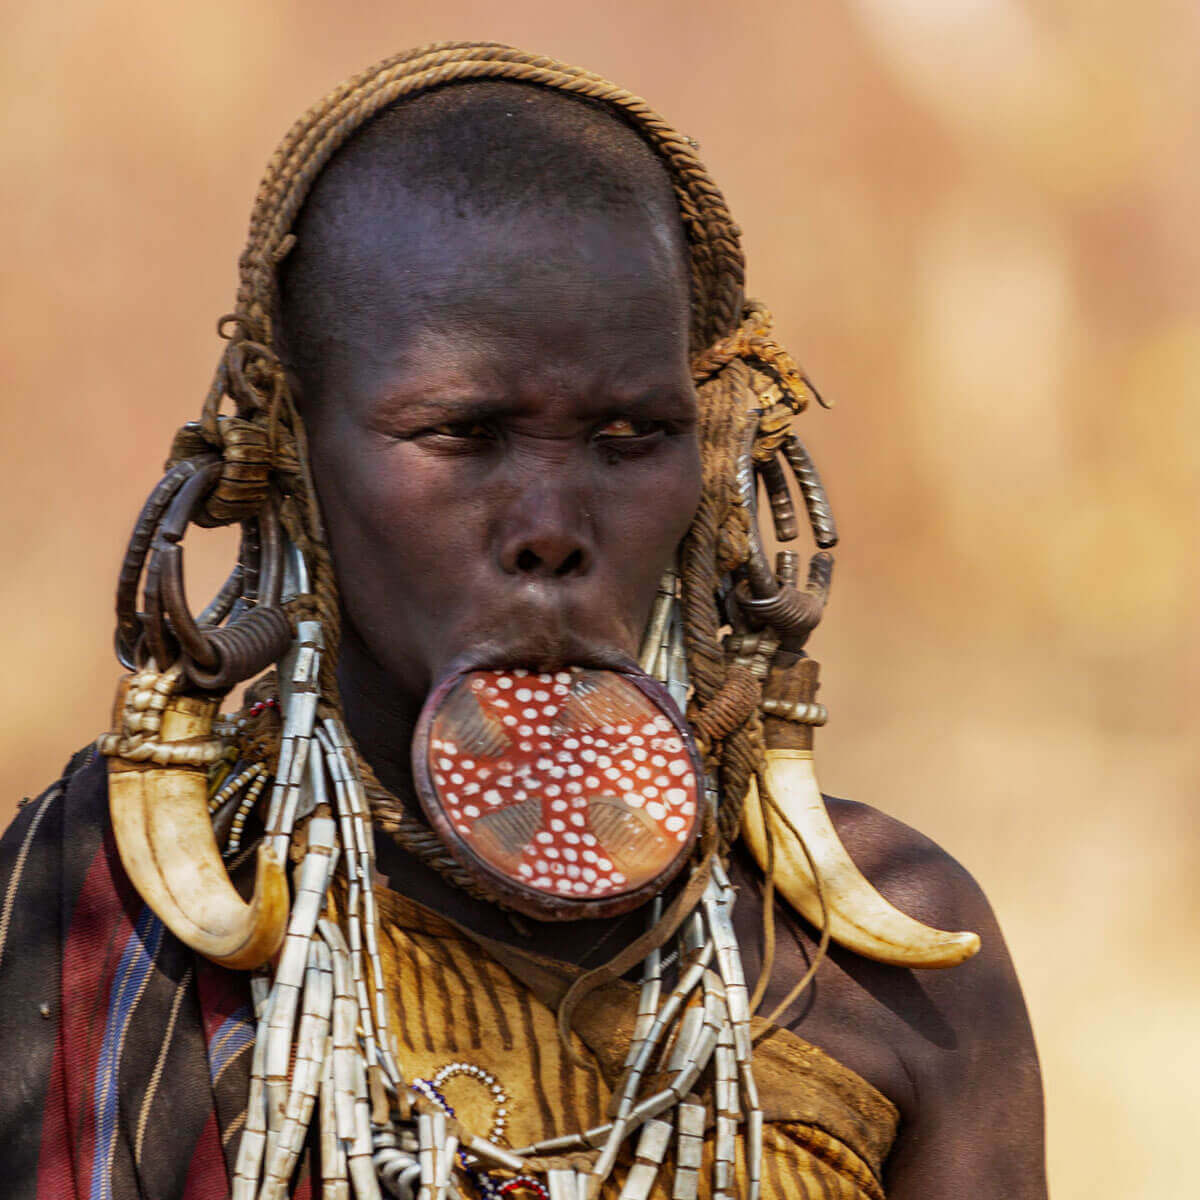 Ethiopia_TRIBES_mursi_omo_valley_culture_traveling_country_Africa_adventuresinethiopia